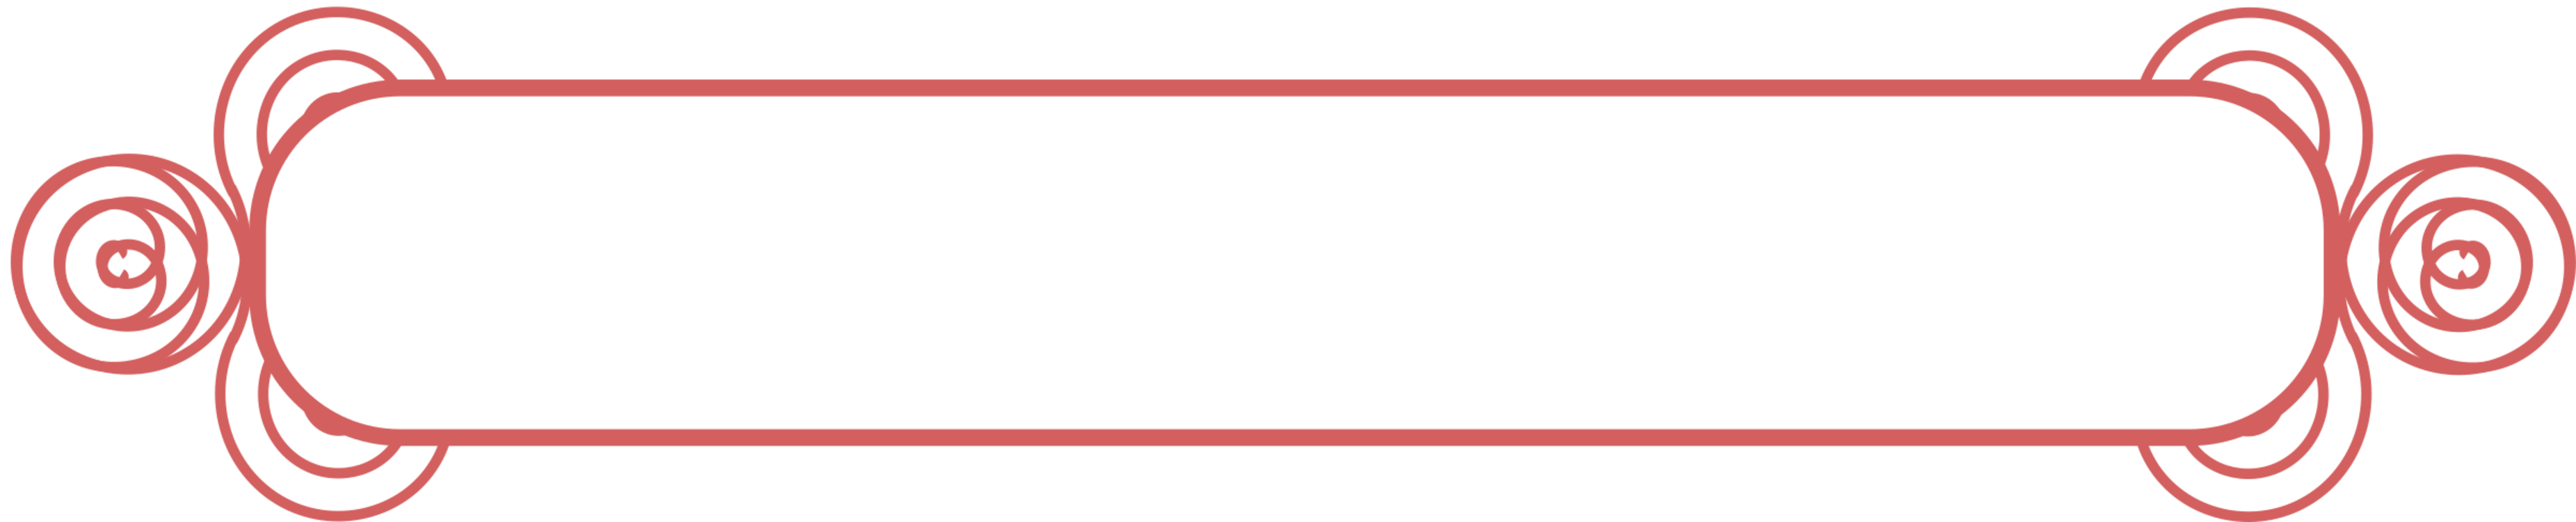 Text clipart text box. Picture frames computer icons